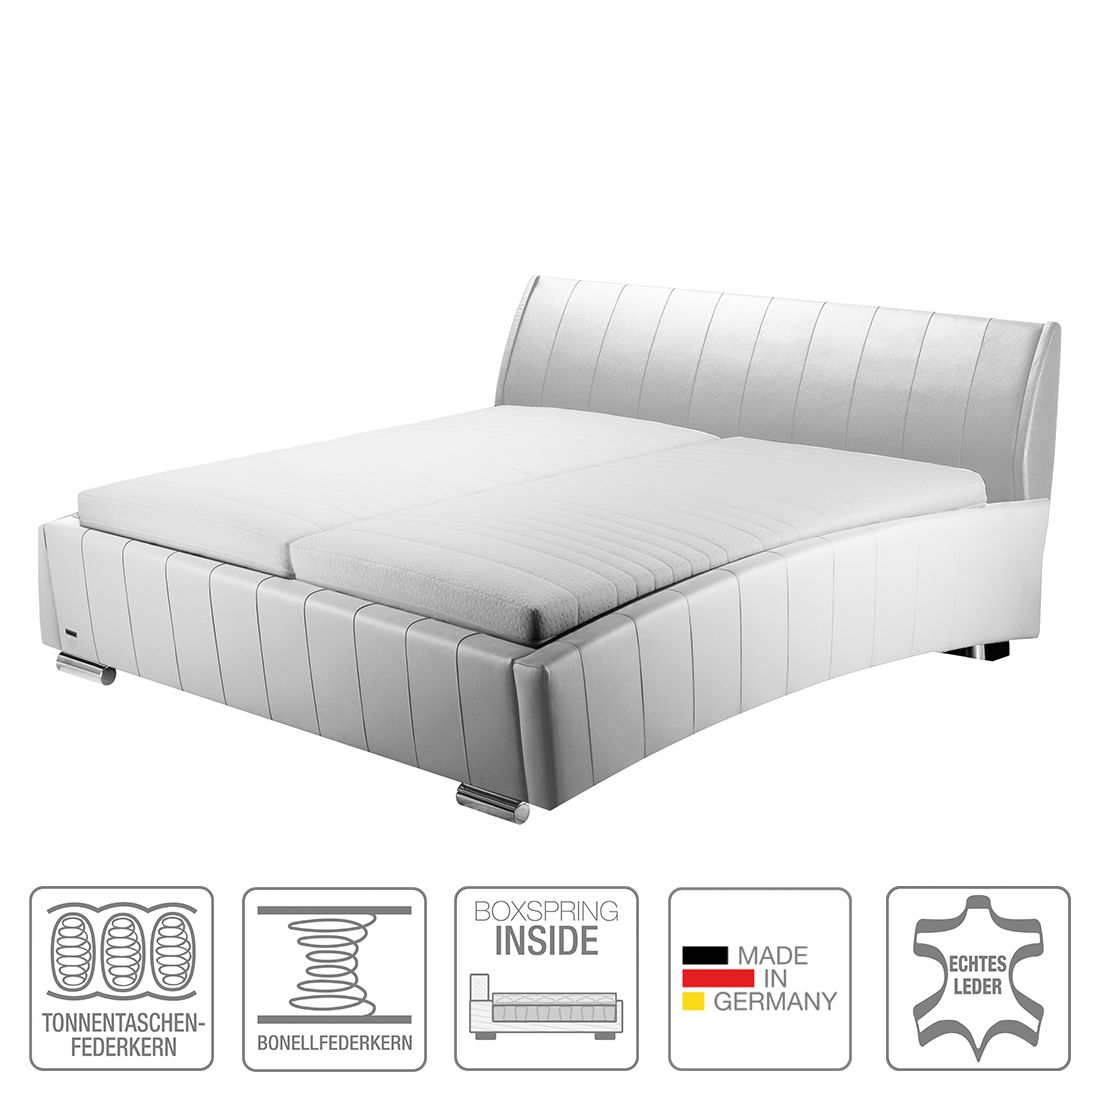 boxspring inside bett sarino echtleder 160 x 200cm h3 ab 80 kg. Black Bedroom Furniture Sets. Home Design Ideas